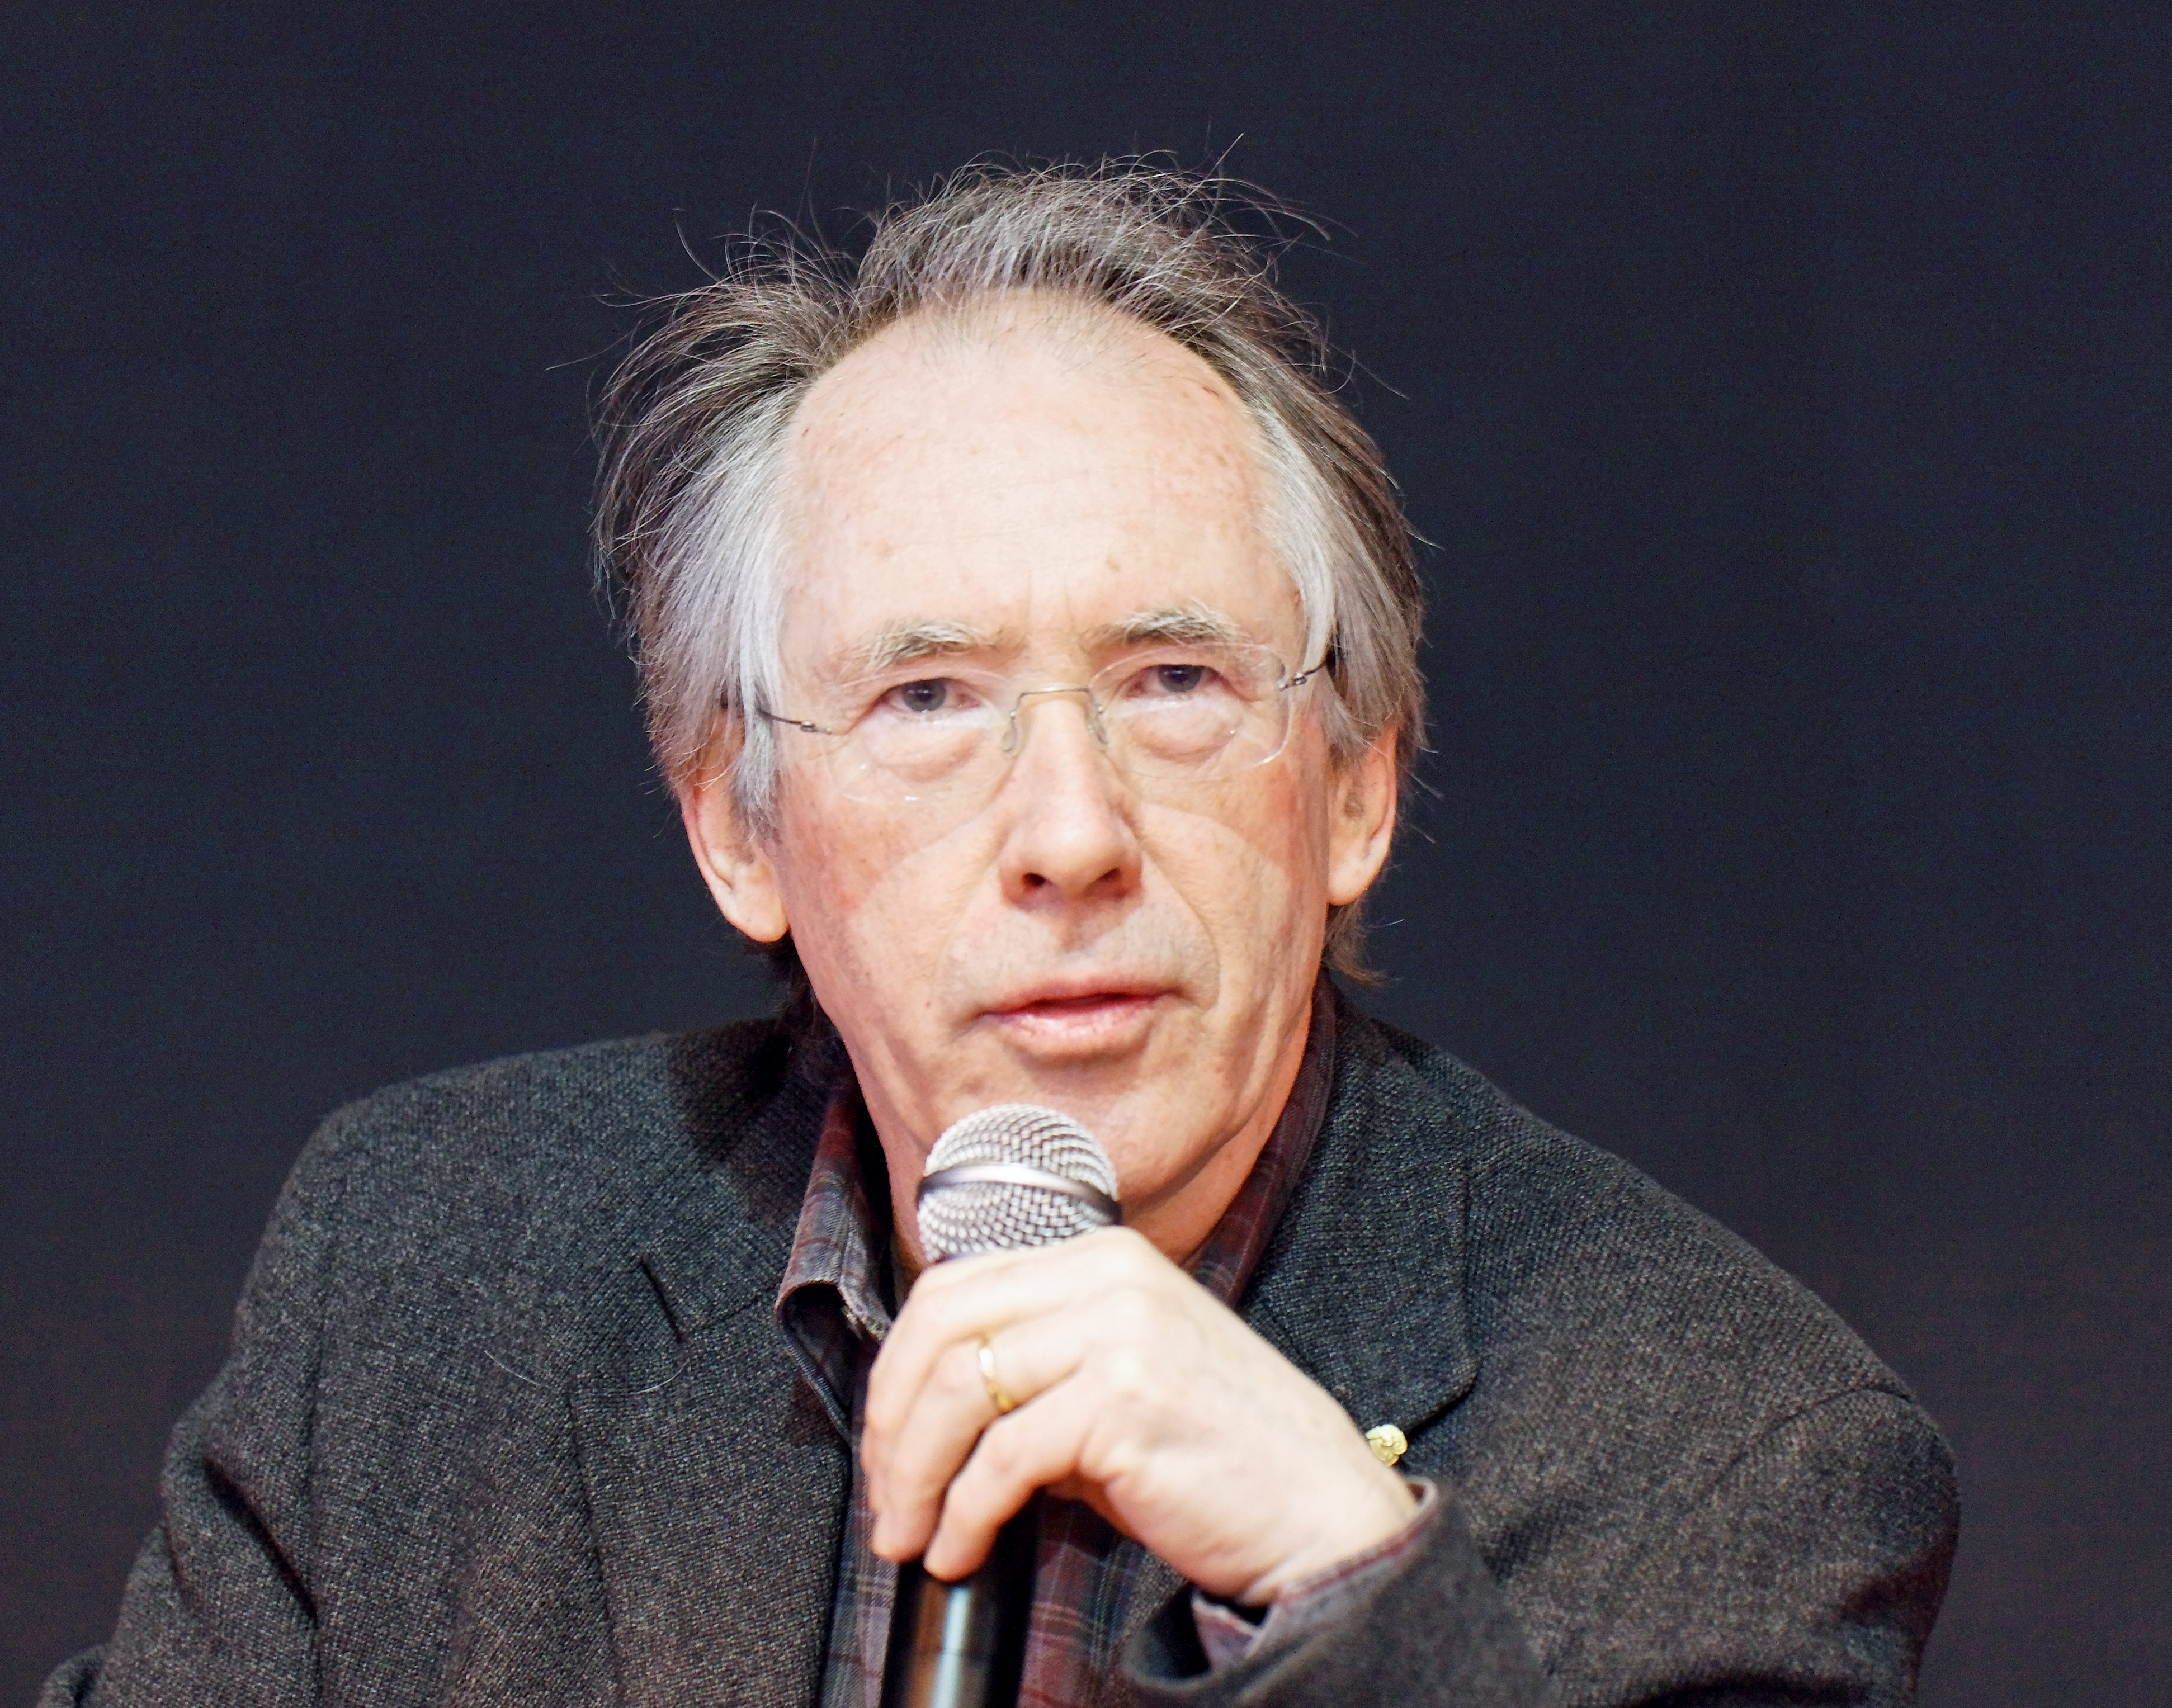 Ian McEwan in Paris, 2011